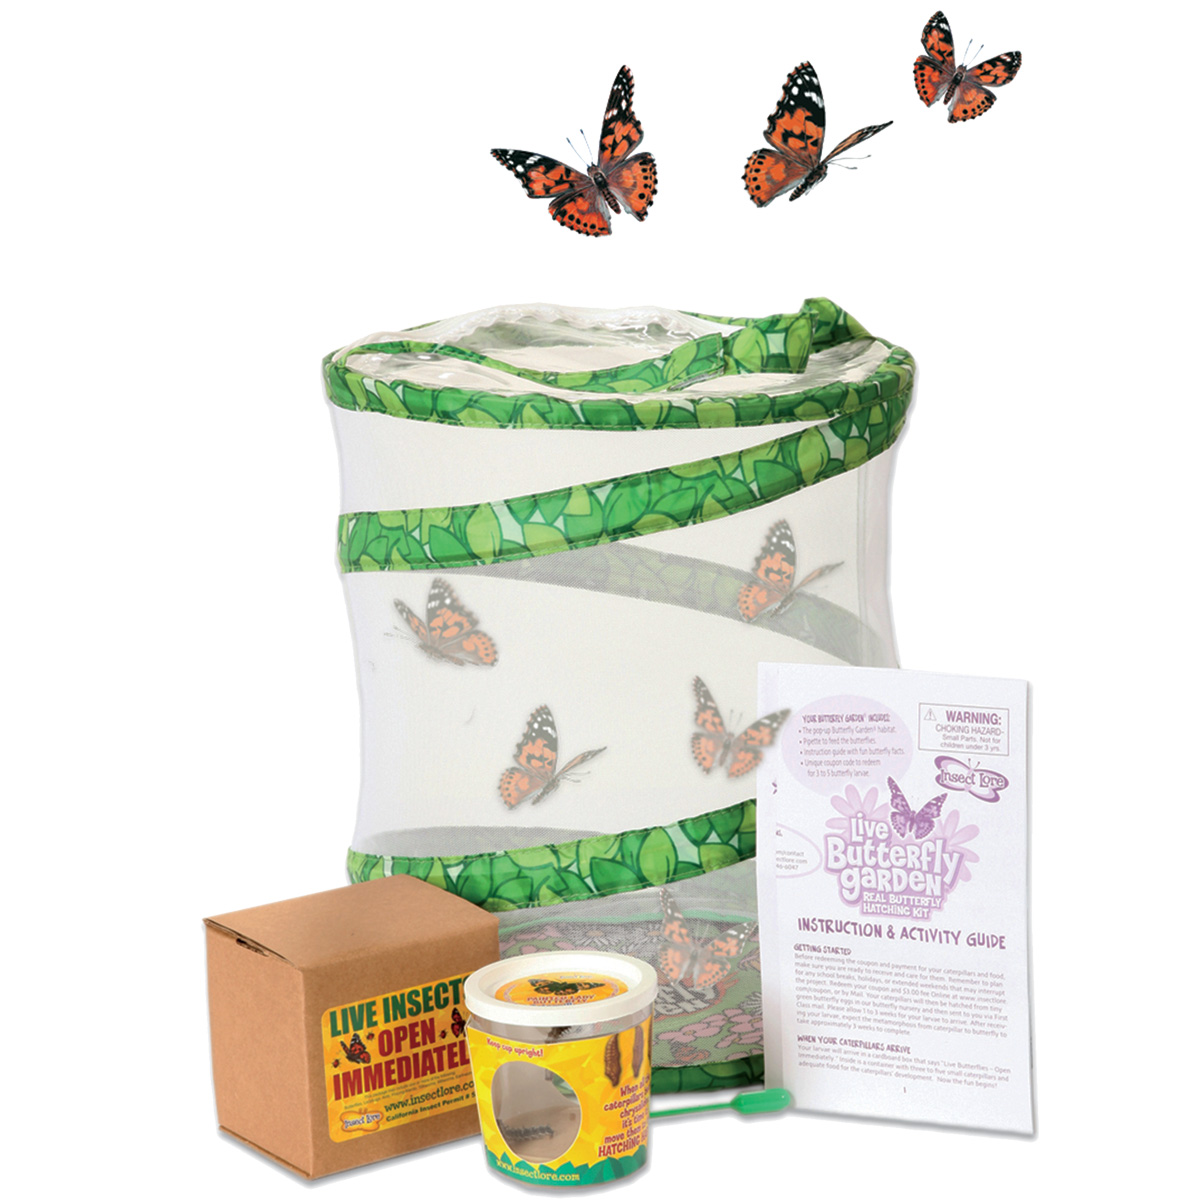 Live Butterfly Garden Kit Exploring Nature Mulberry Bush